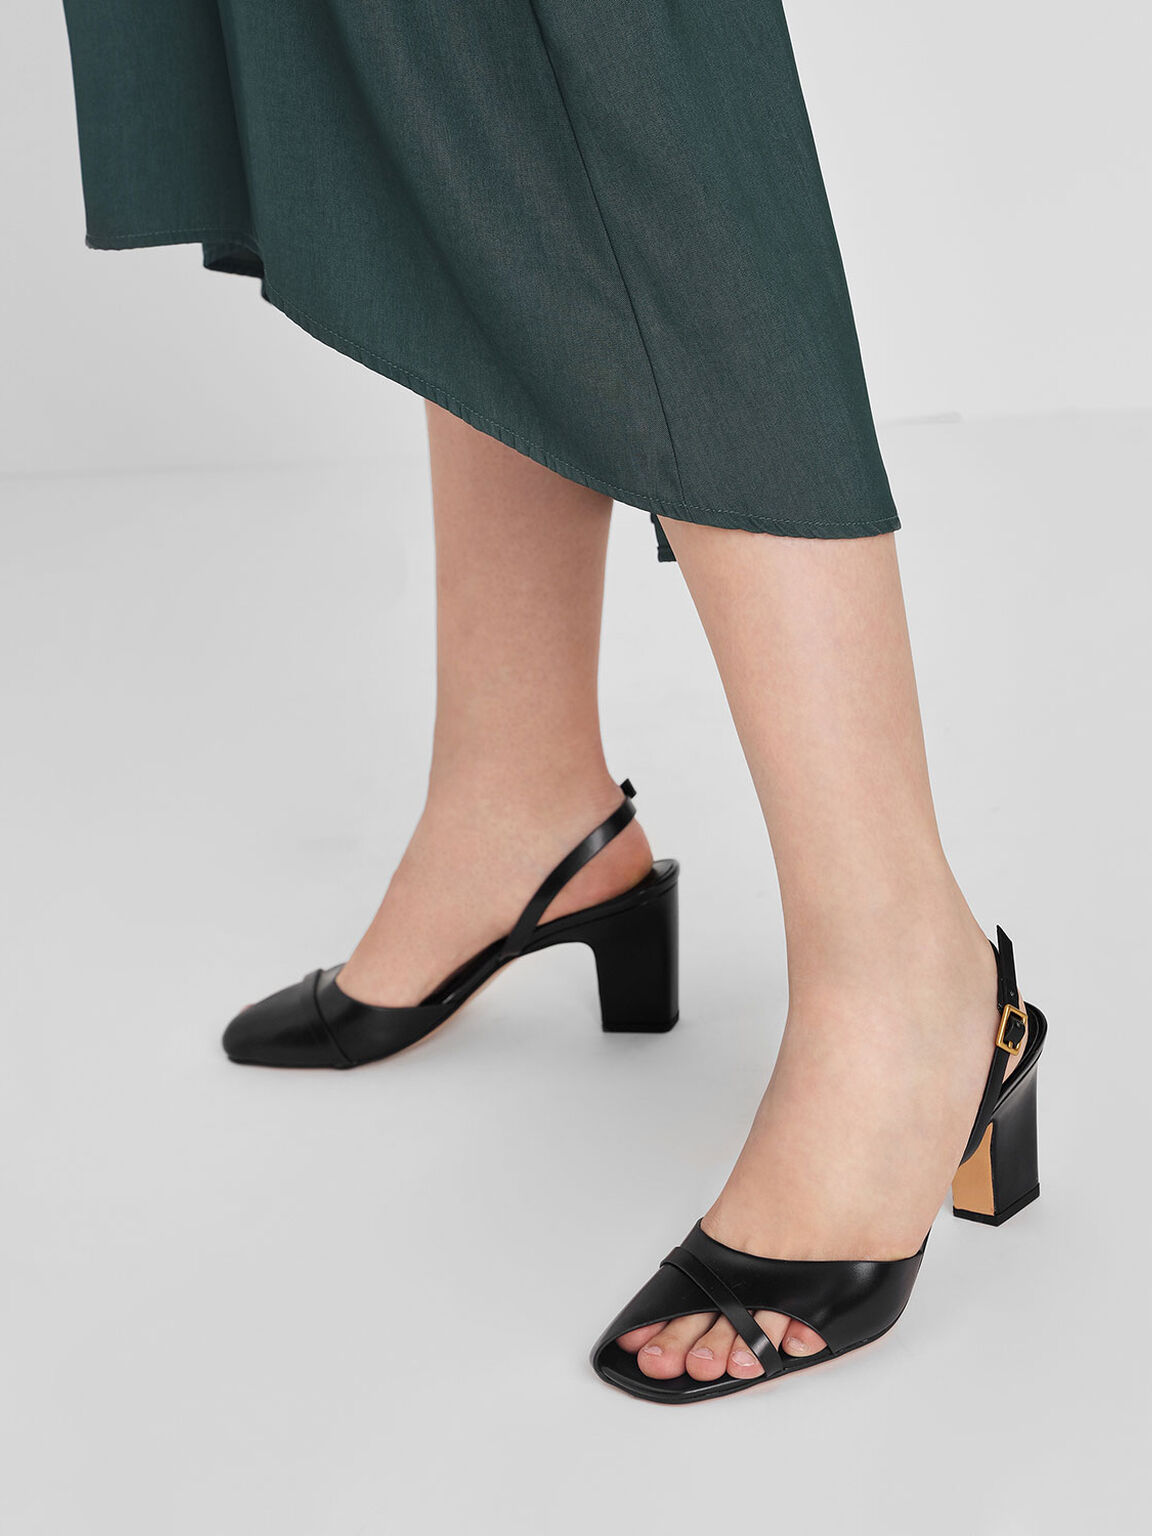 Asymmetrical Peep Toe Heels, Black, hi-res